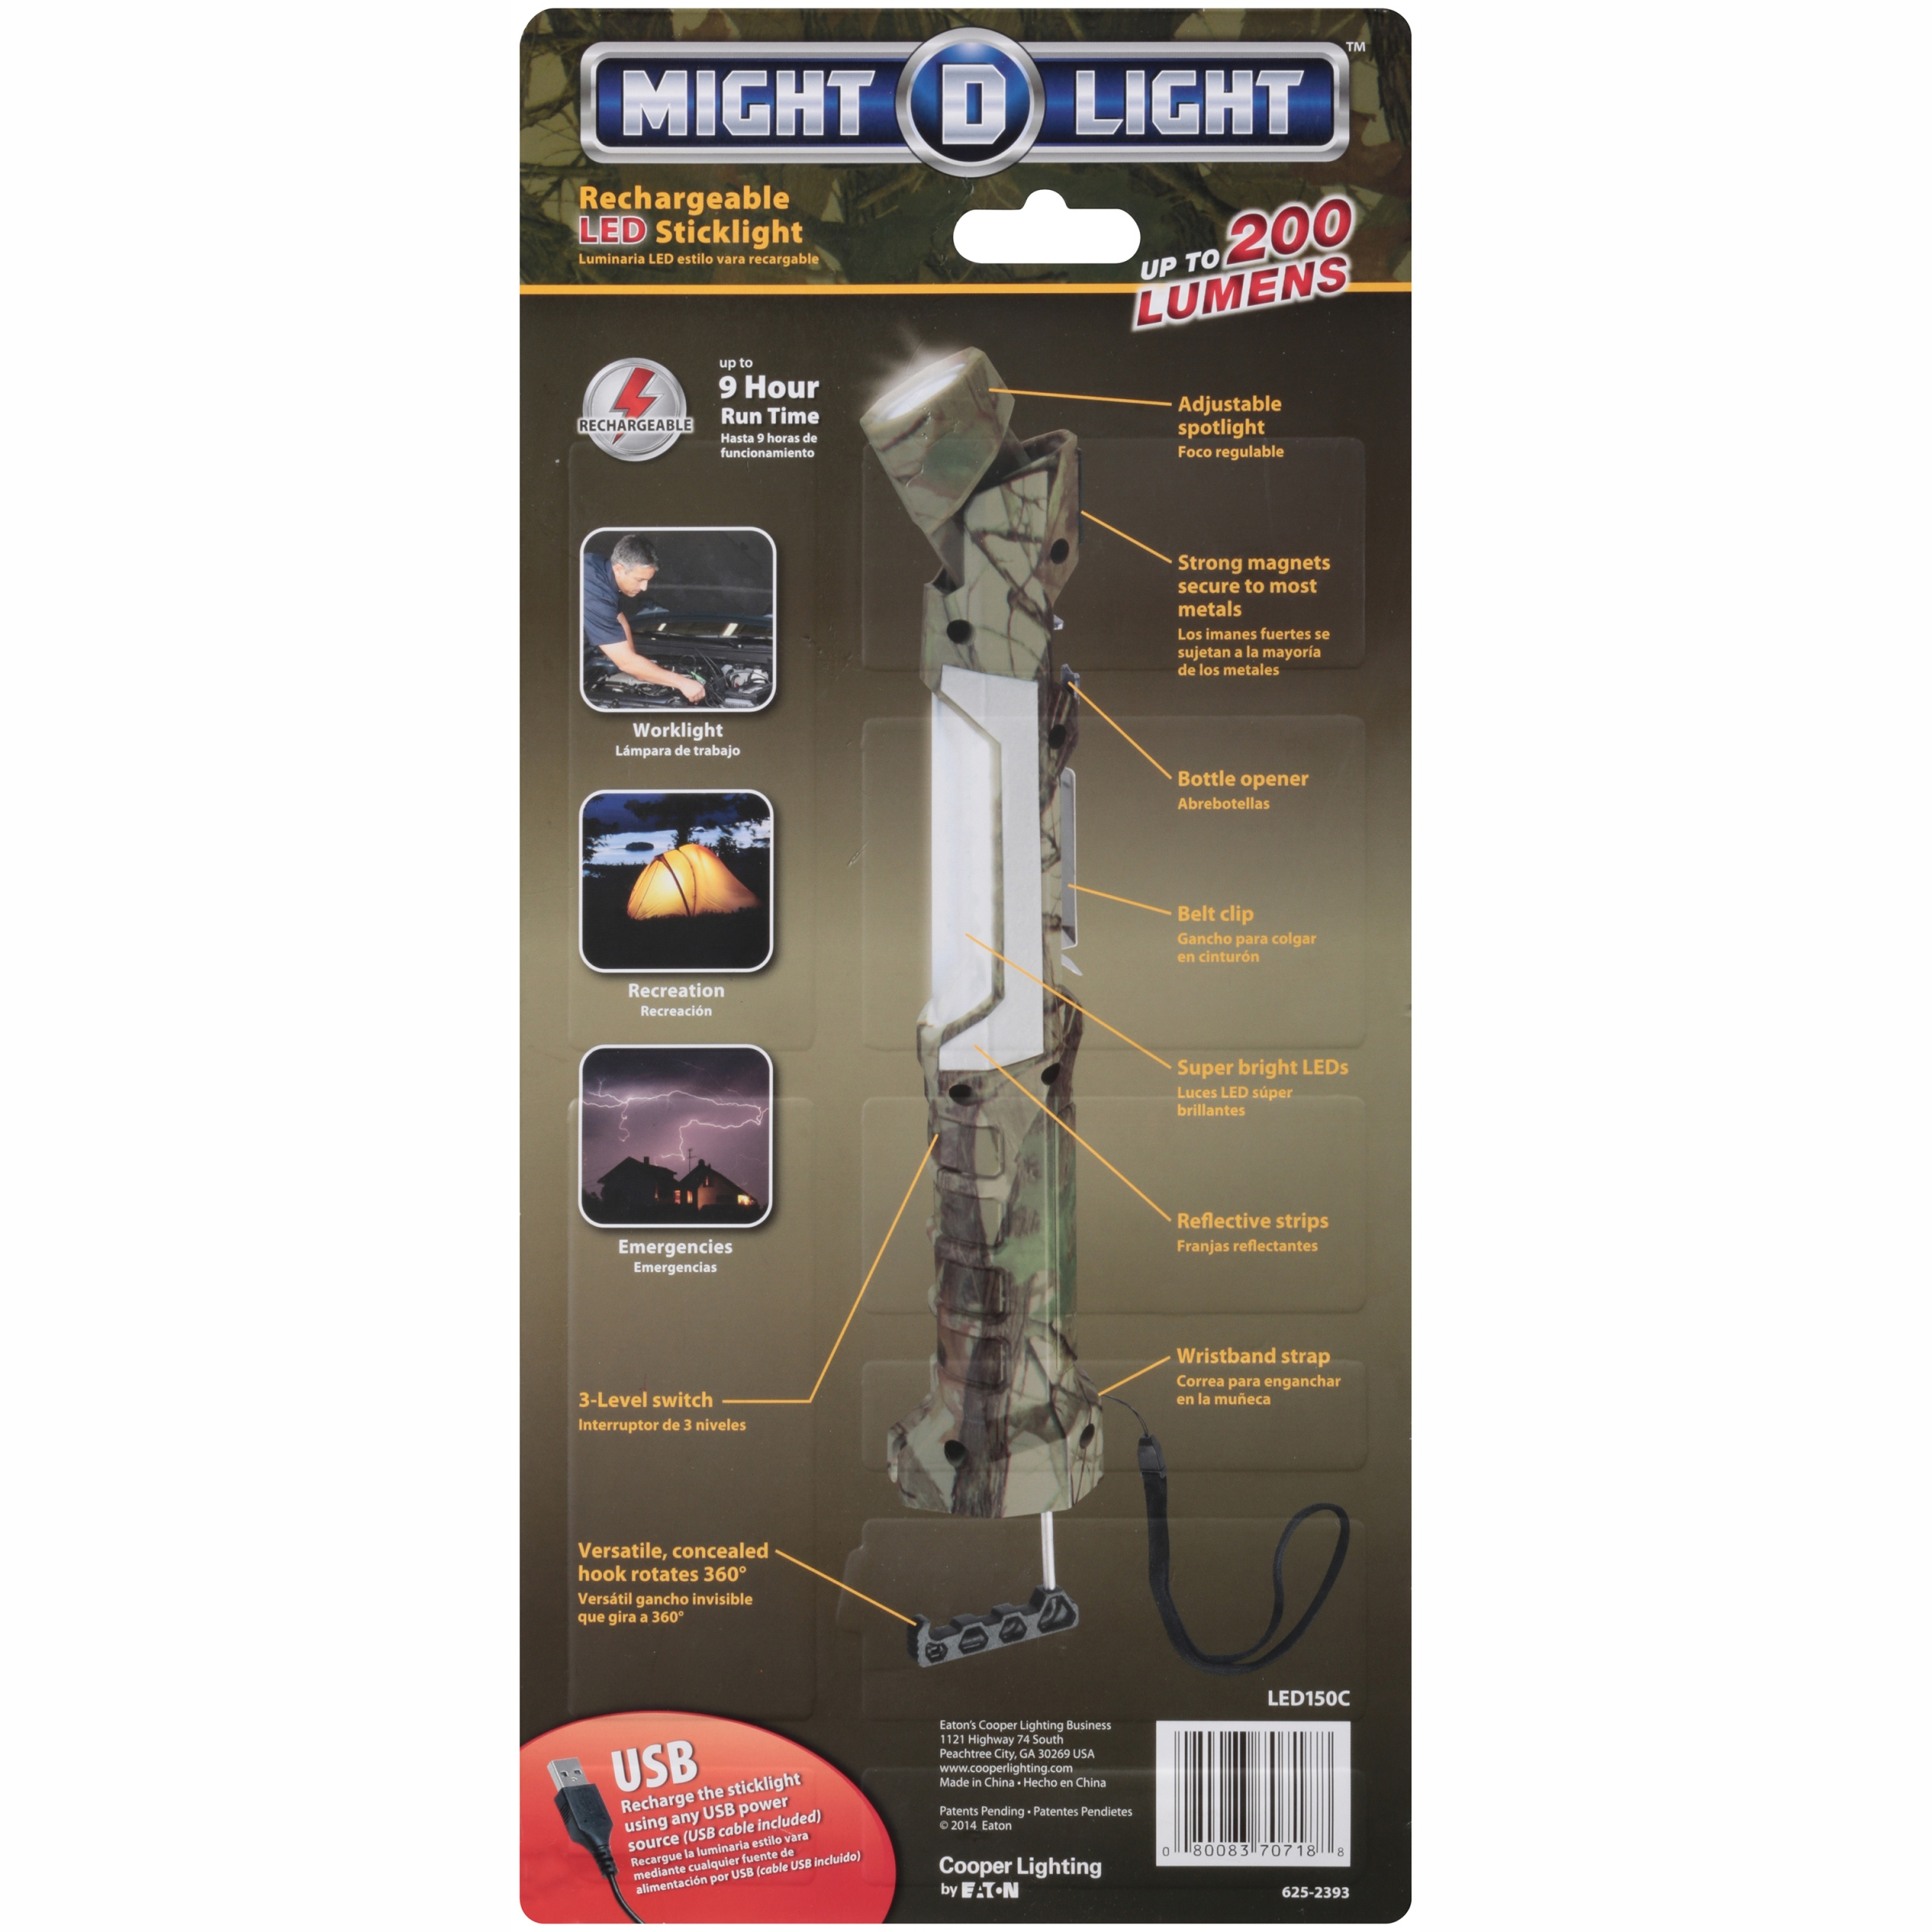 Cooper Lighting Might-D-Light Rechargeable LED Stick Light - Walmart.com  sc 1 st  Walmart & Cooper Lighting Might-D-Light Rechargeable LED Stick Light ... azcodes.com